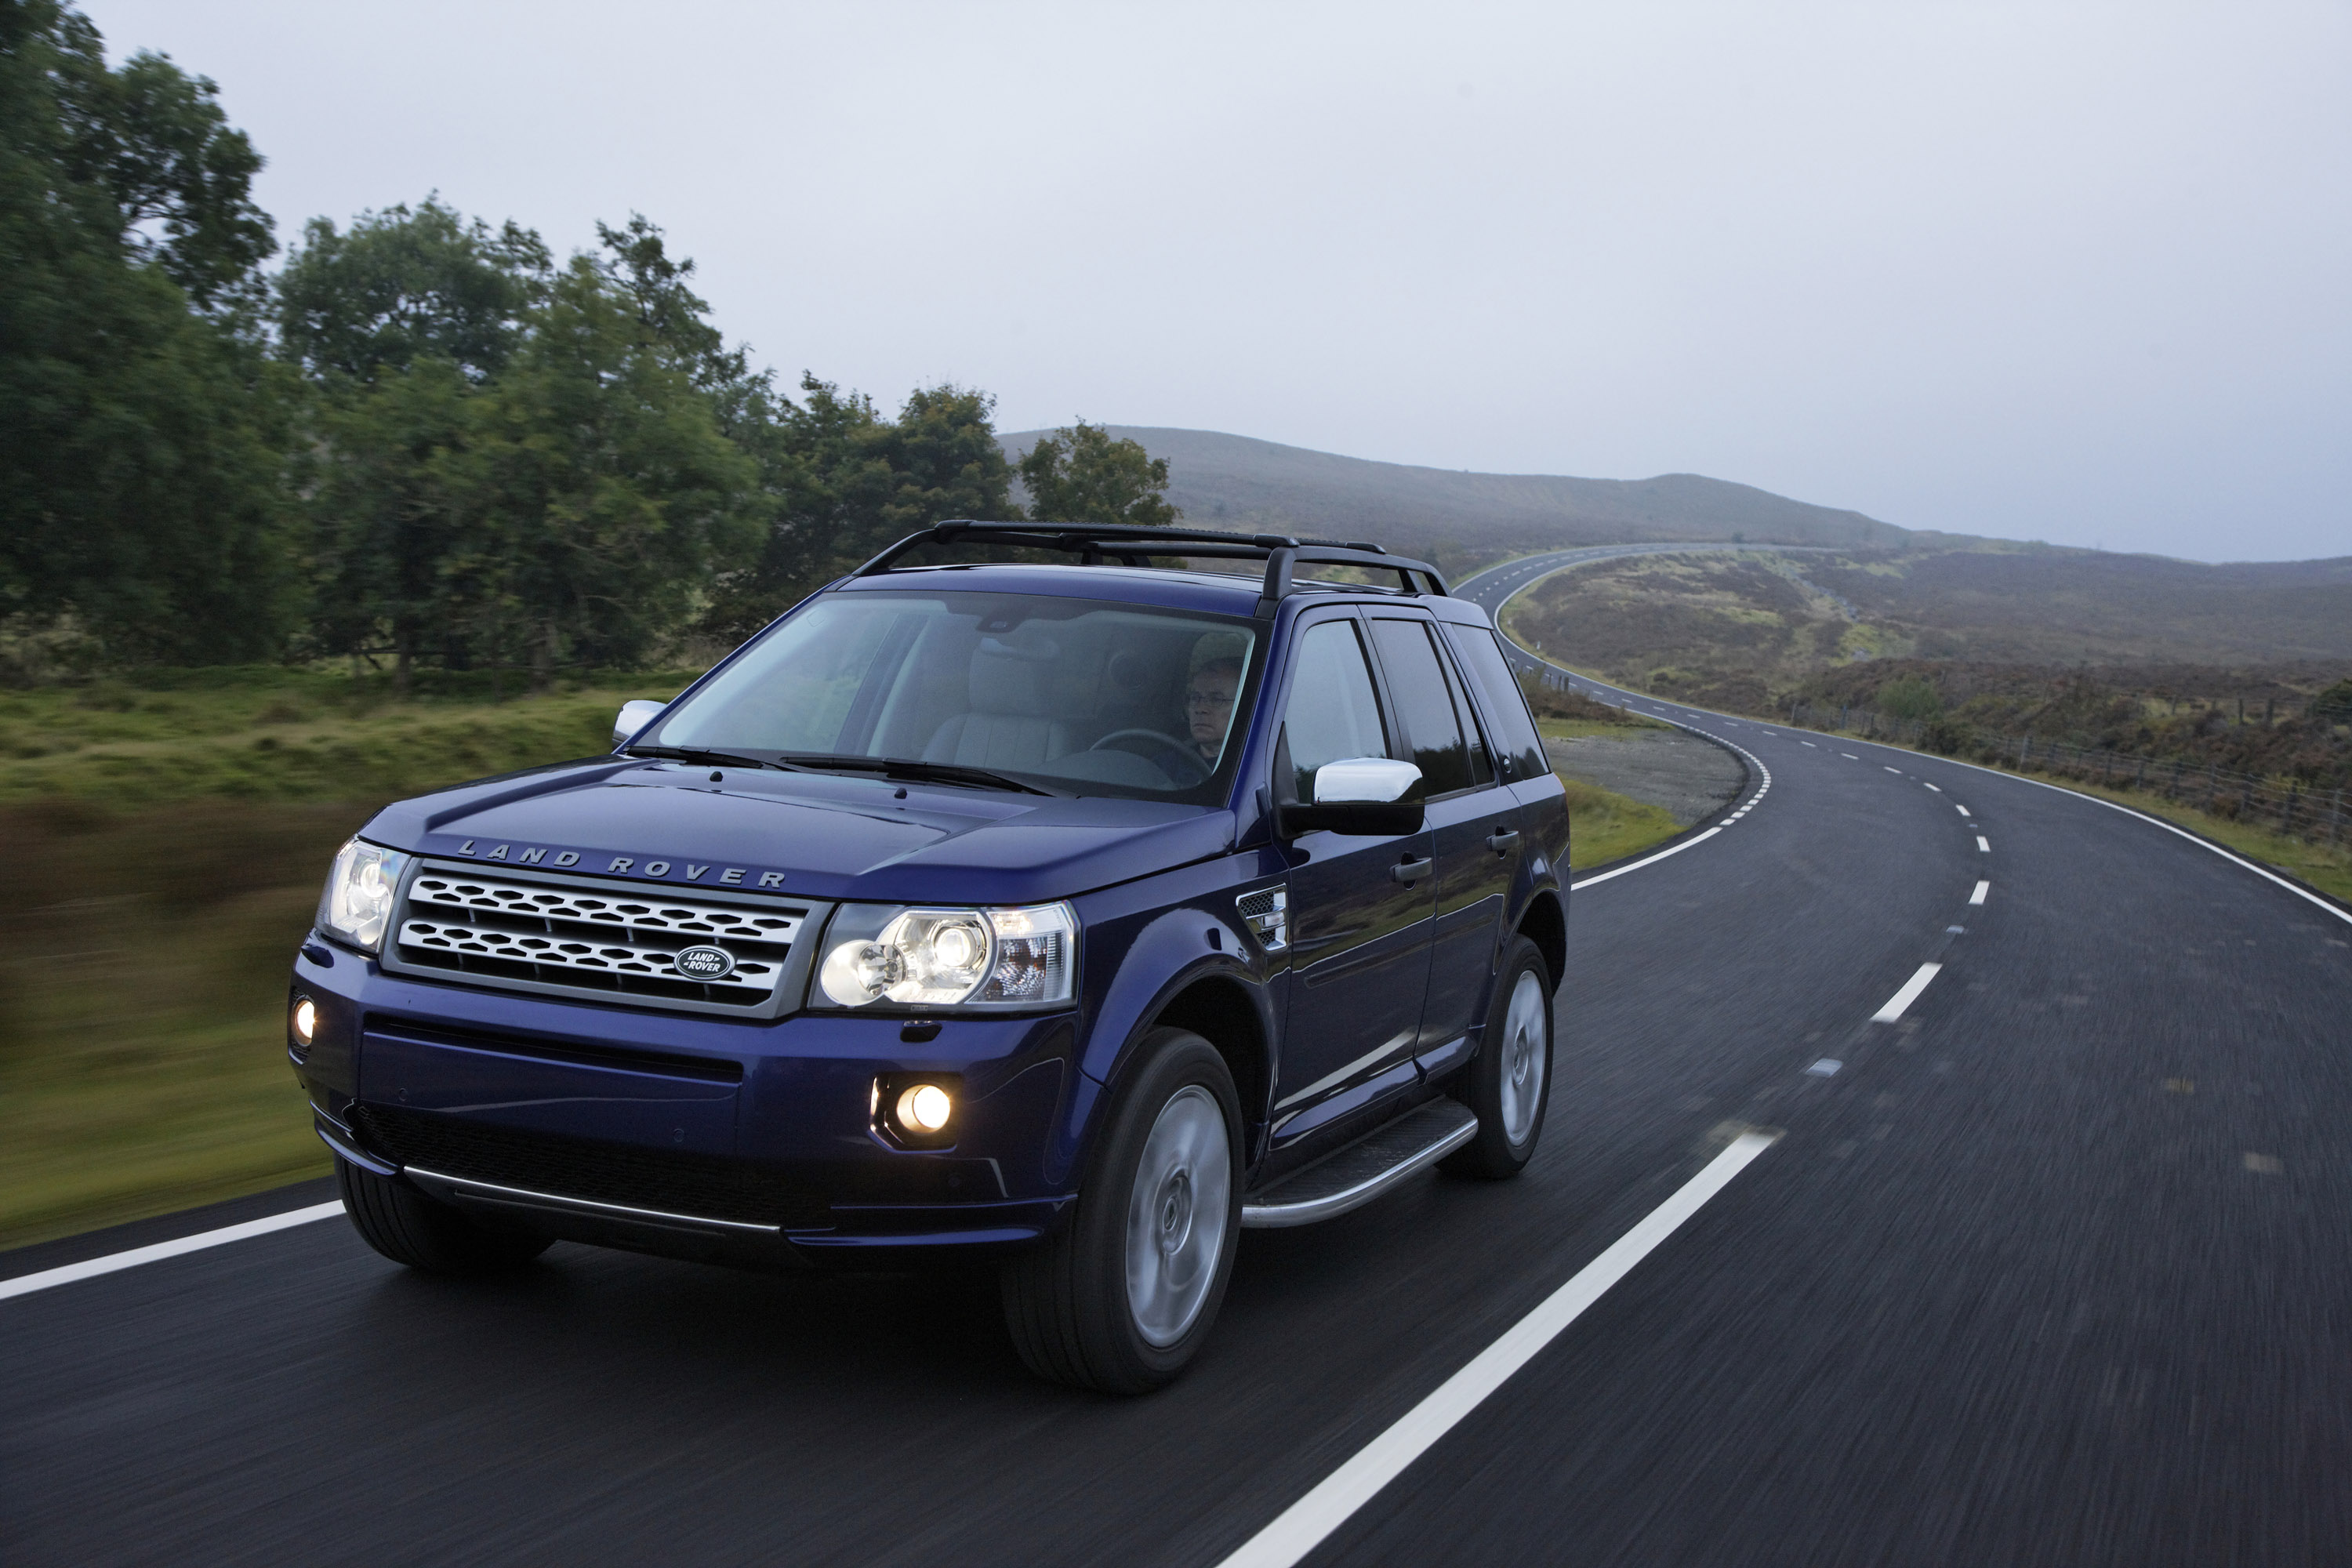 Land Rover Freelander 2 photo #2